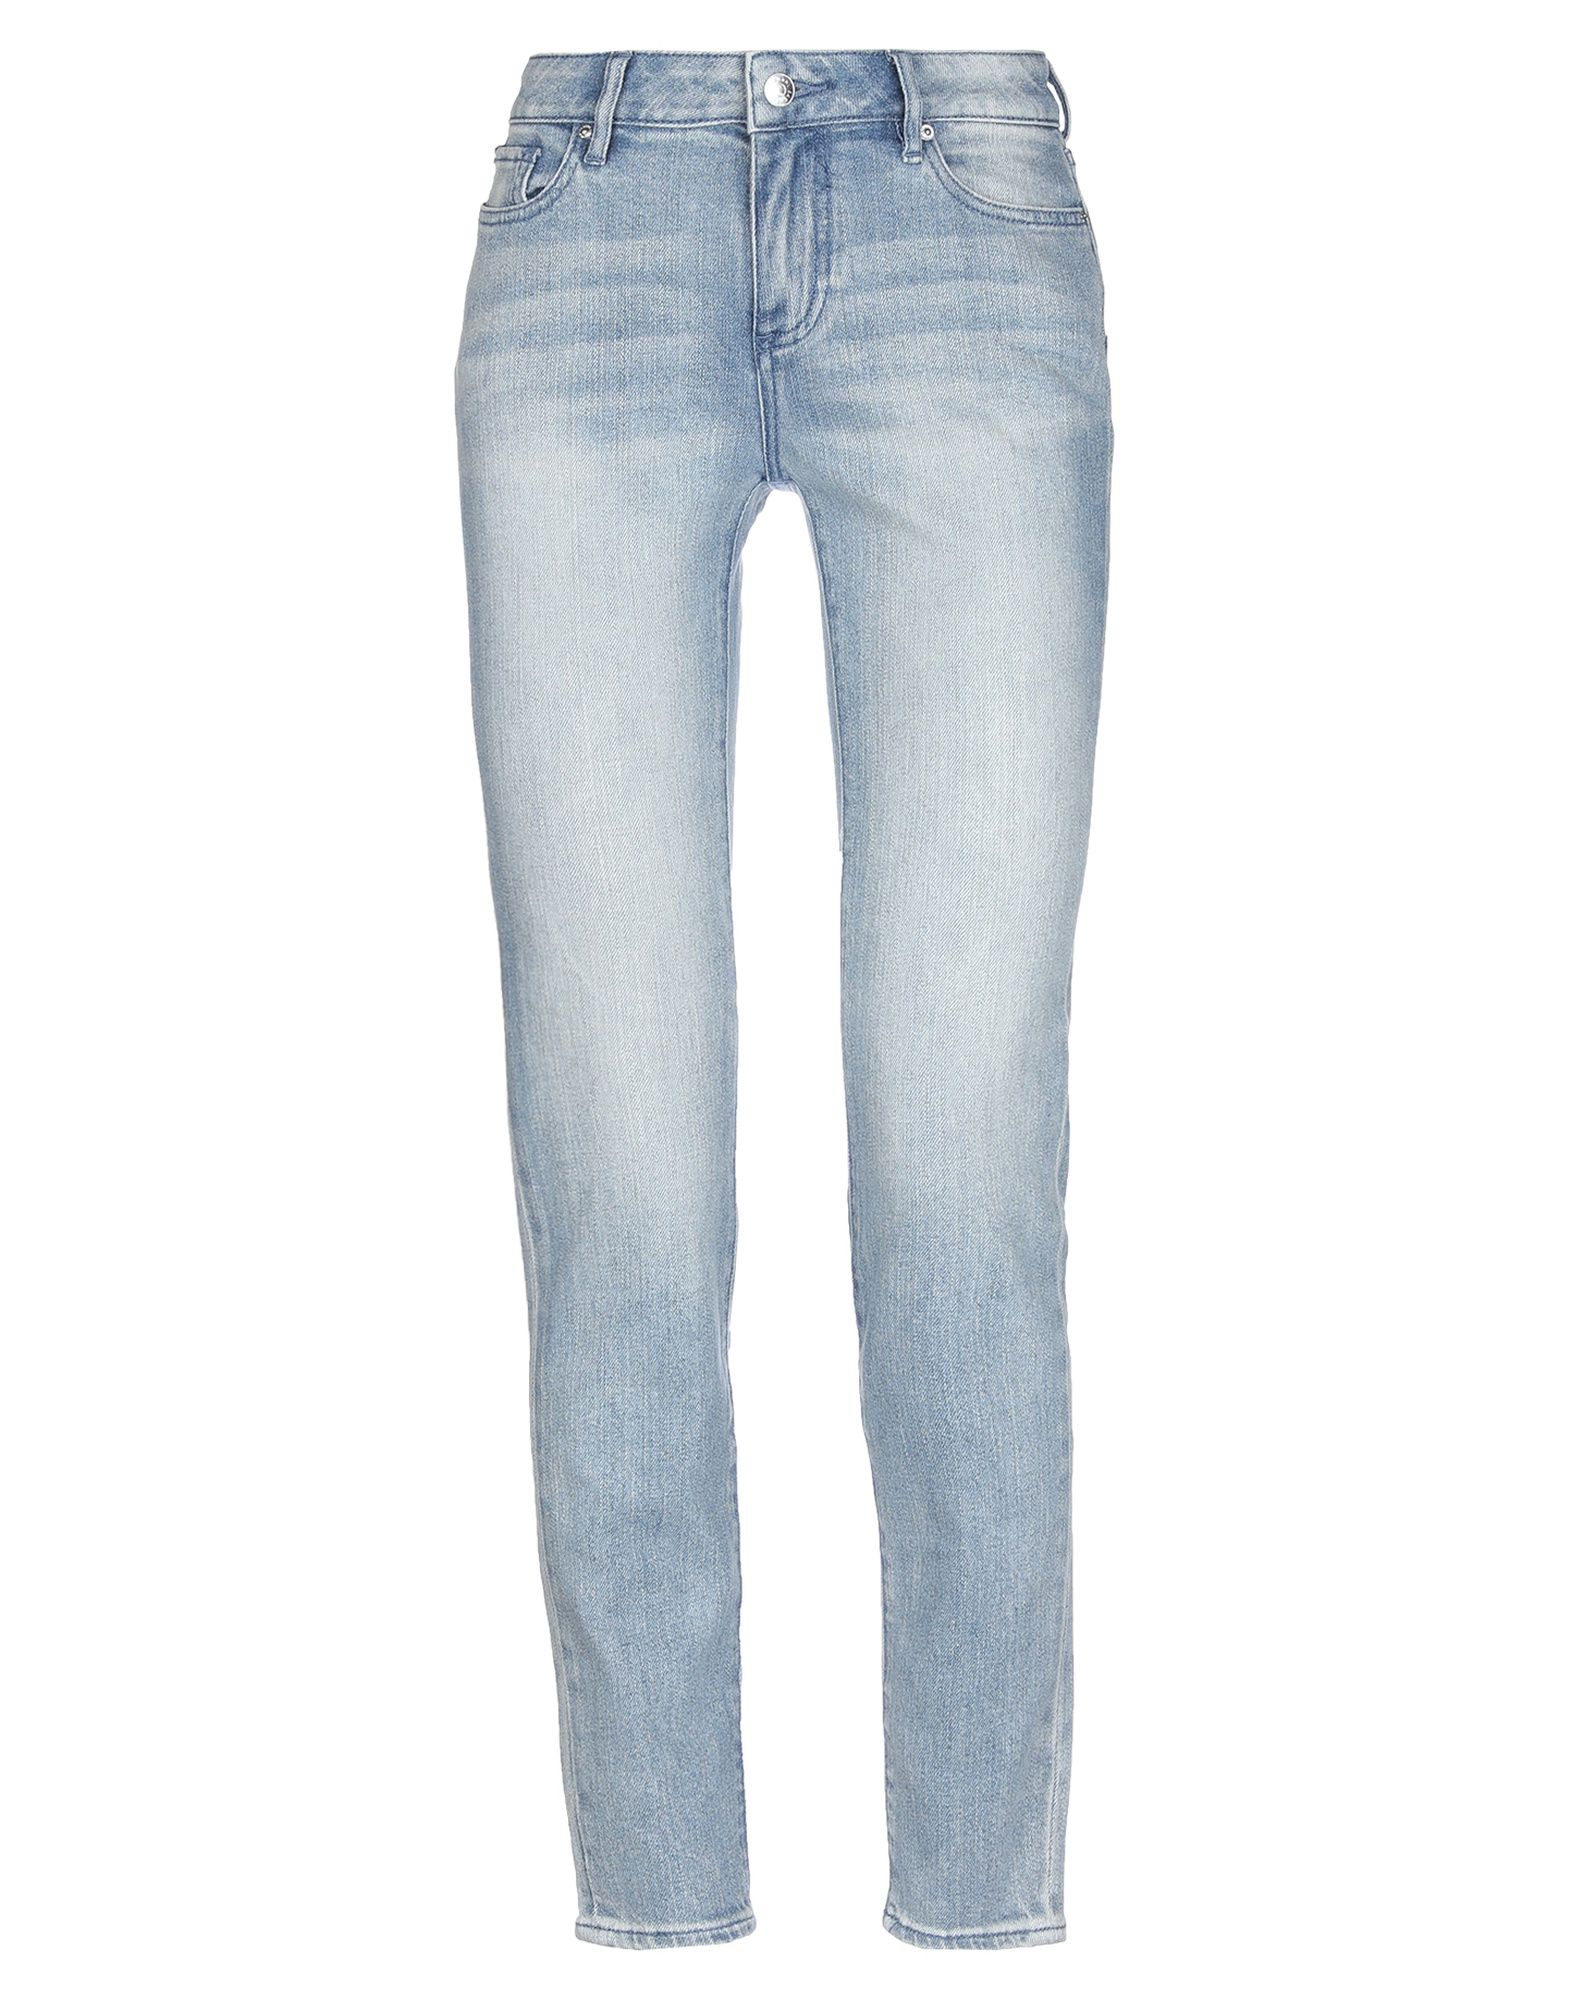 ARMANI EXCHANGE Denim pants - Item 42728250